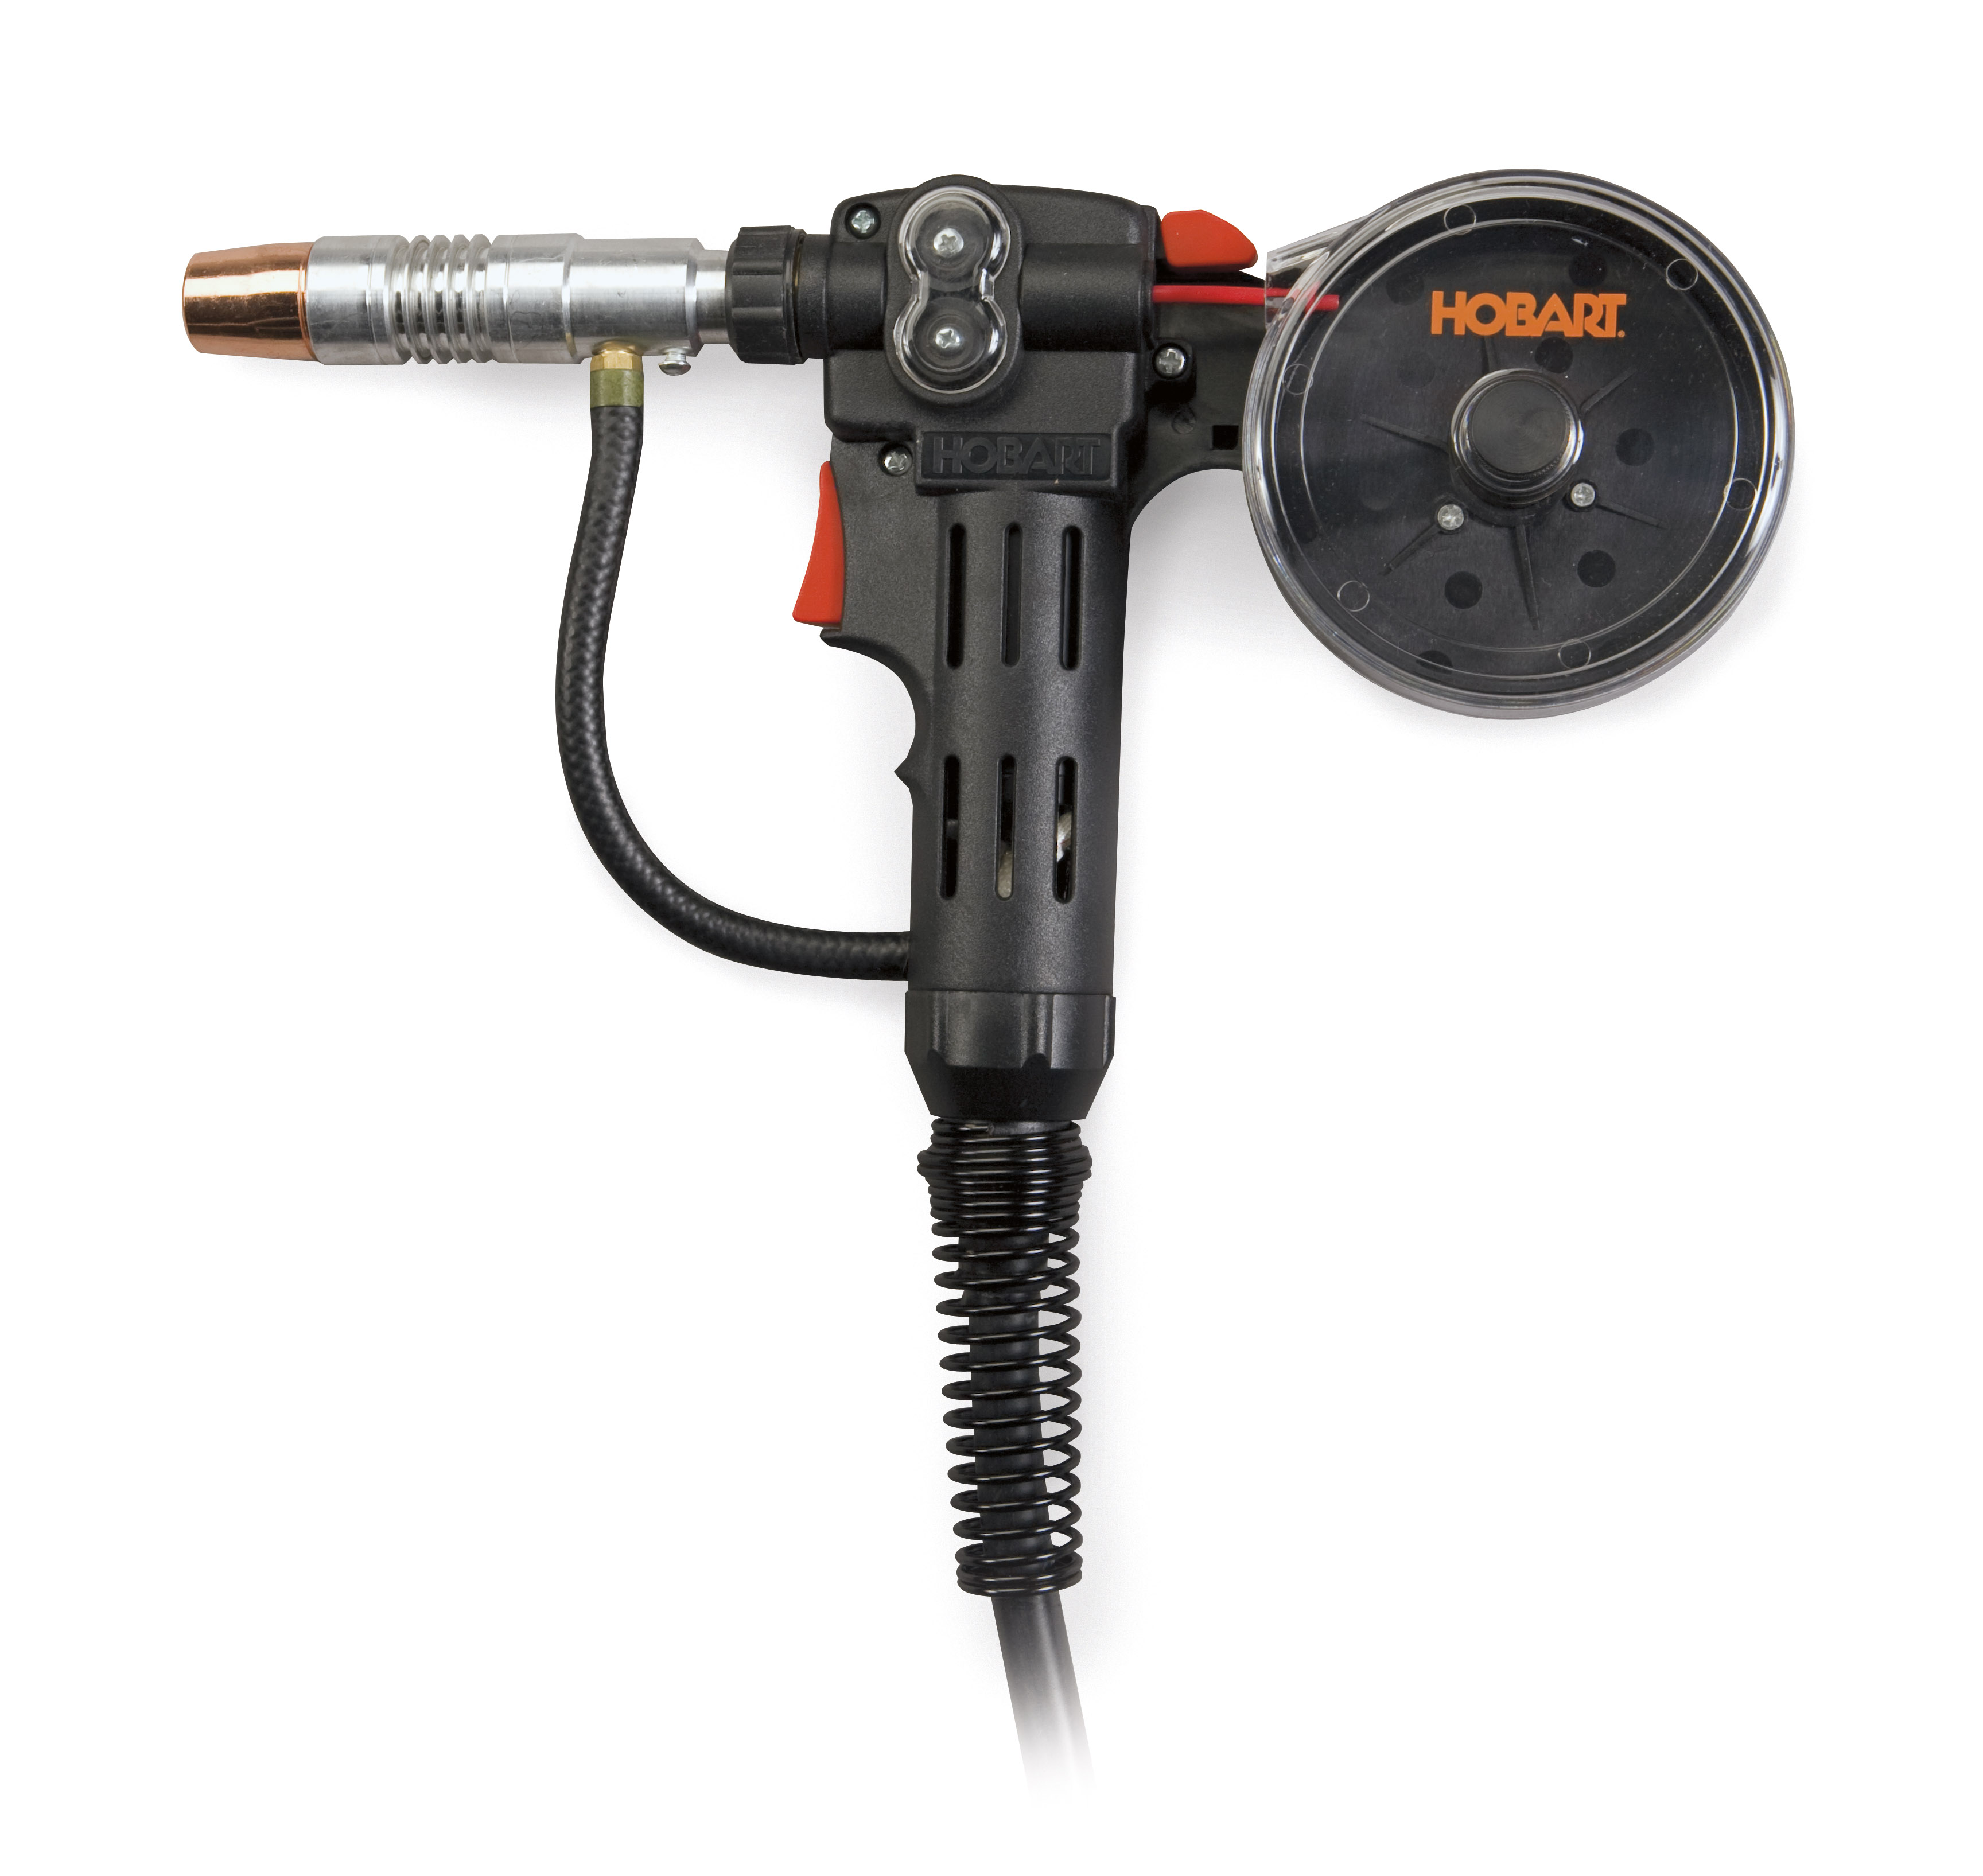 Hobart\'s New DP 3545-20 Spool Gun Has Features for Heavy Duty Use ...